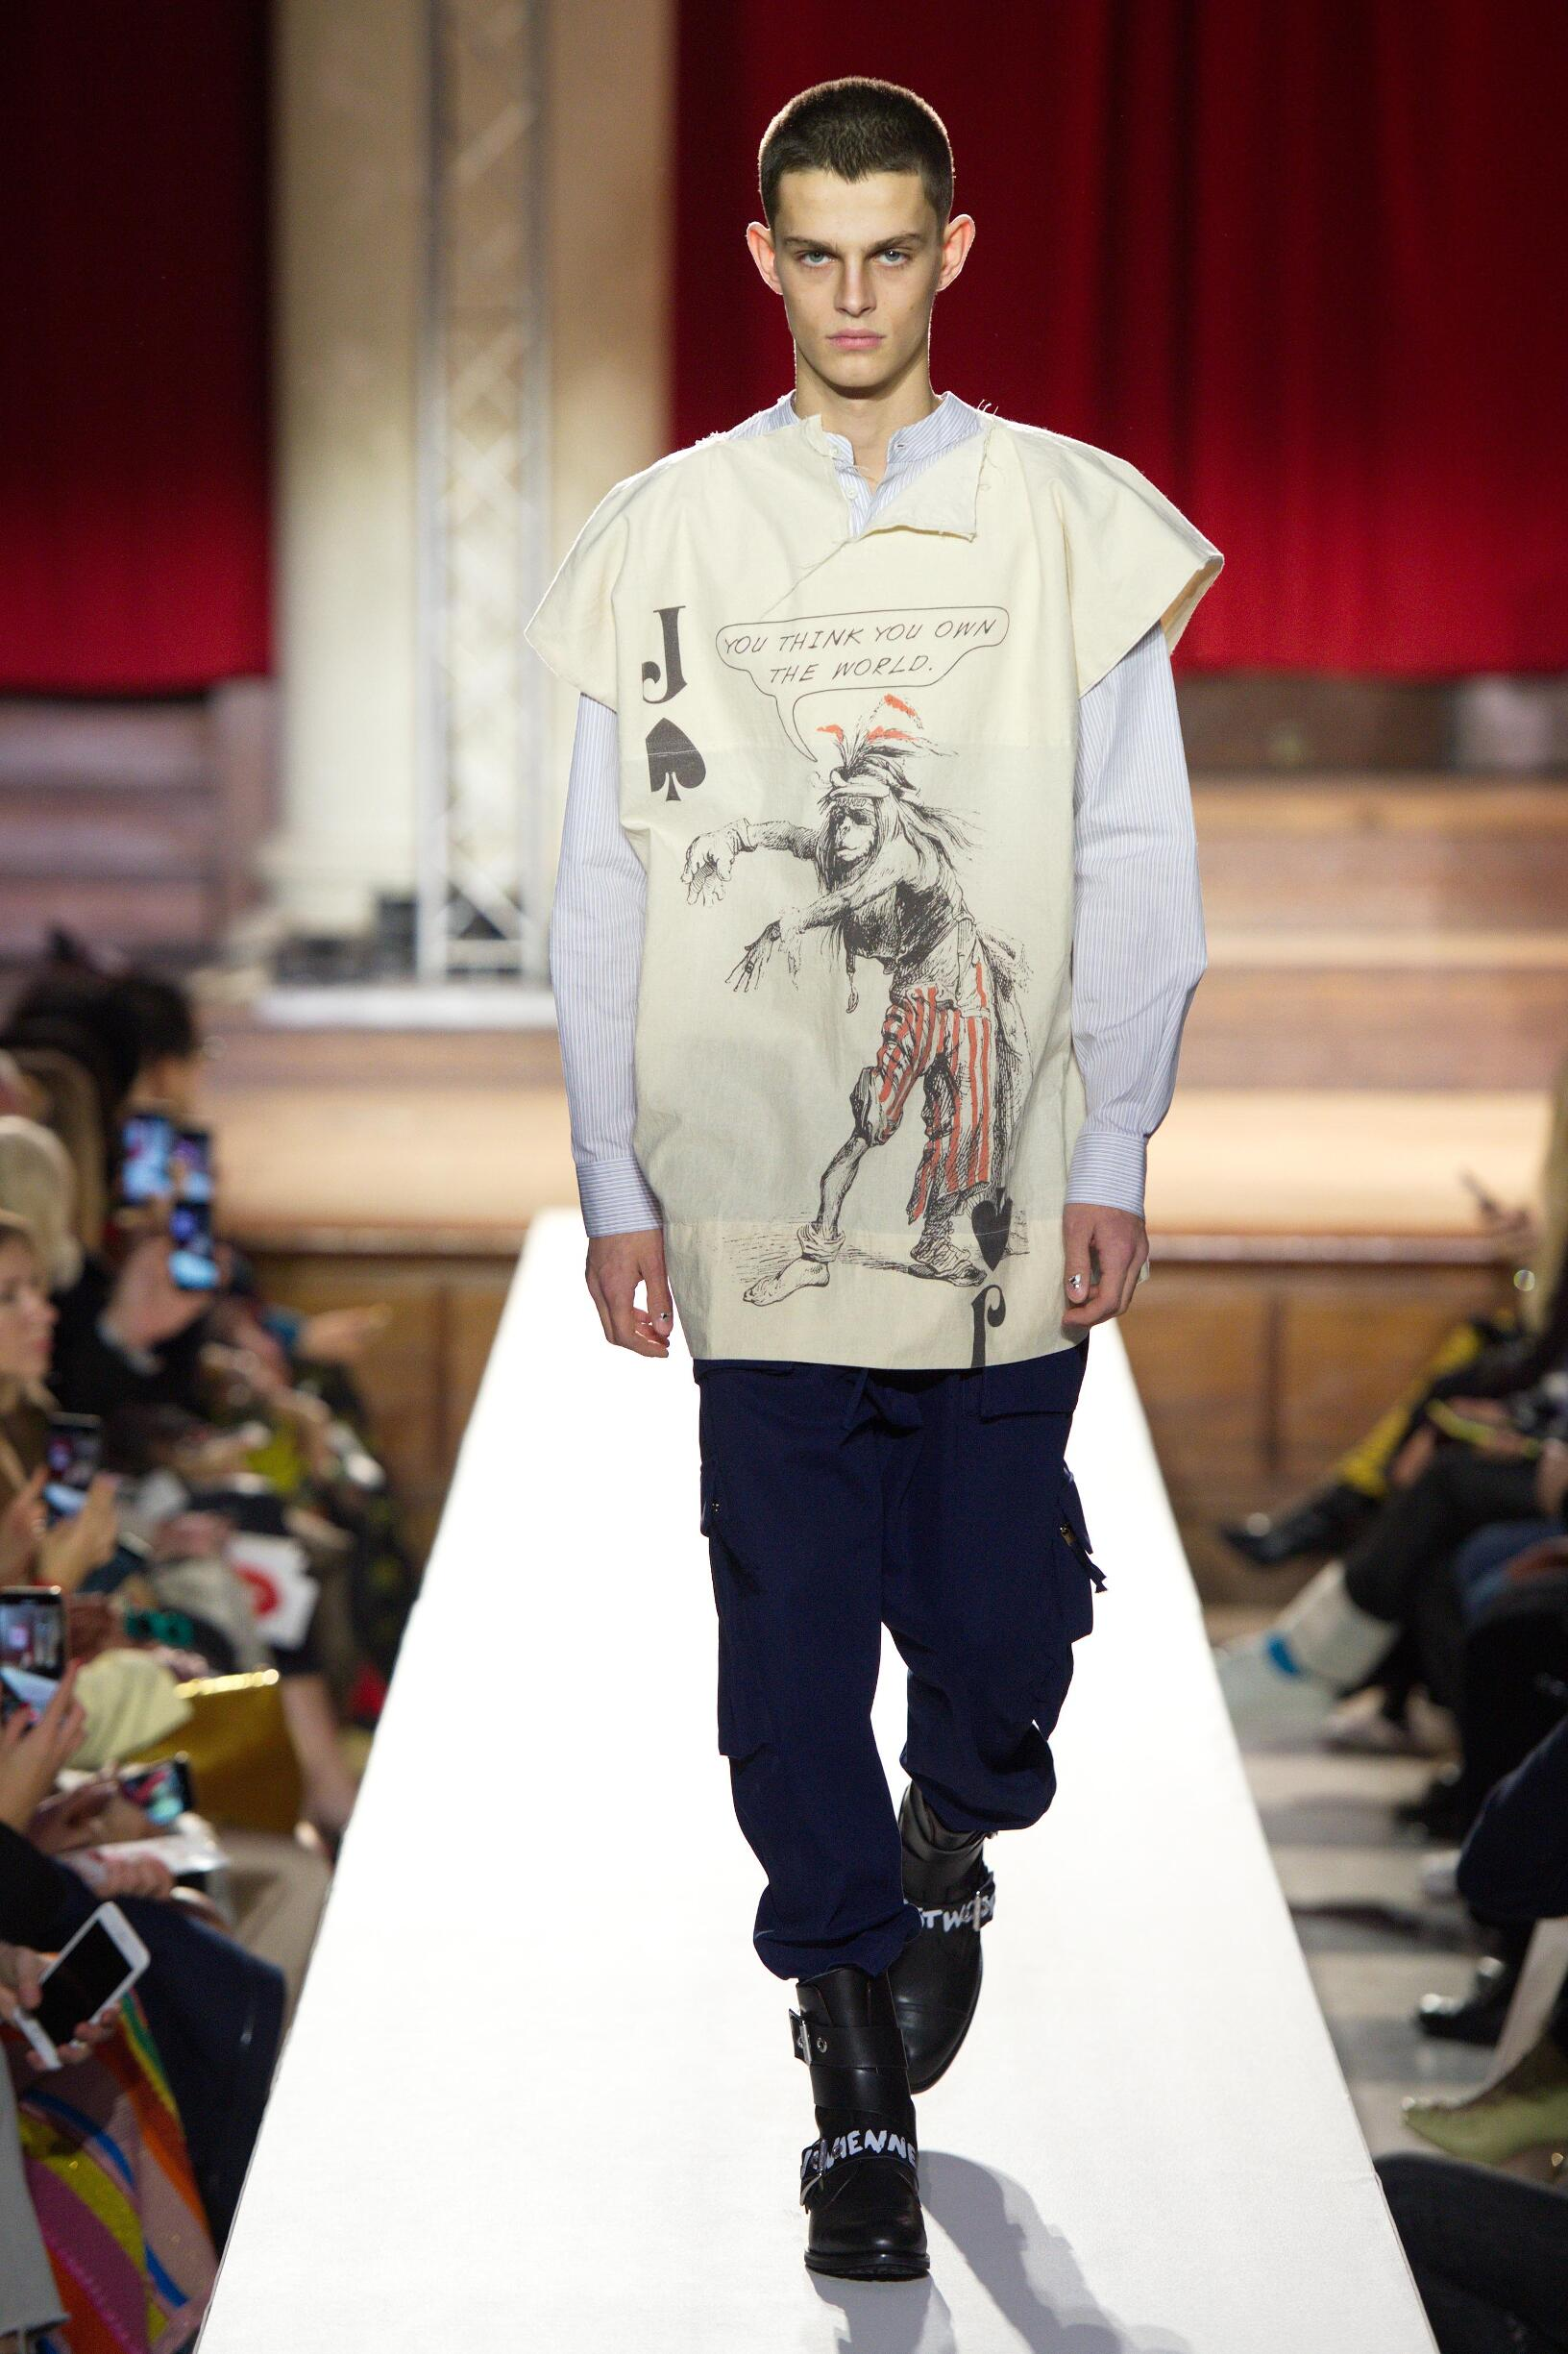 Catwalk Vivienne Westwood Man Fashion Show Winter 2019